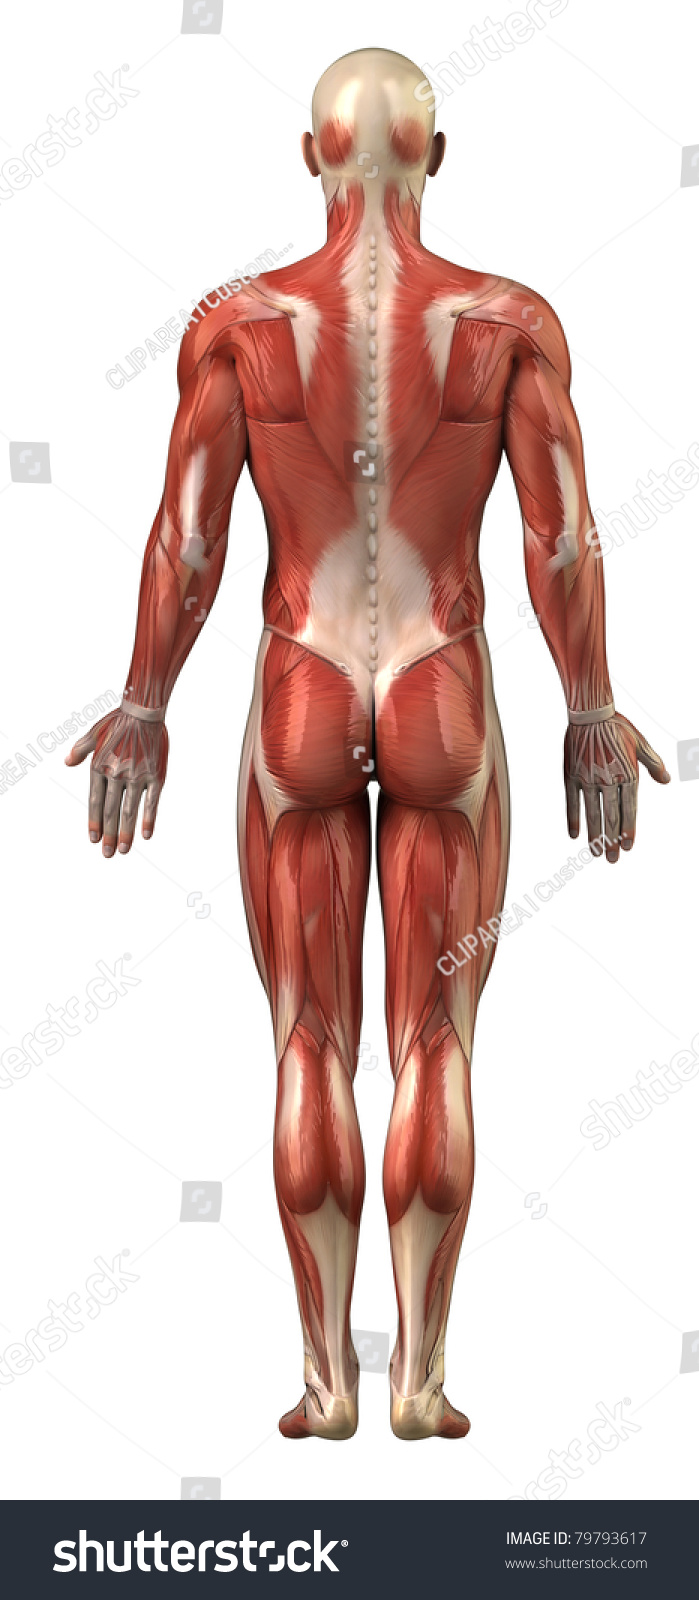 Pictures of male anatomy